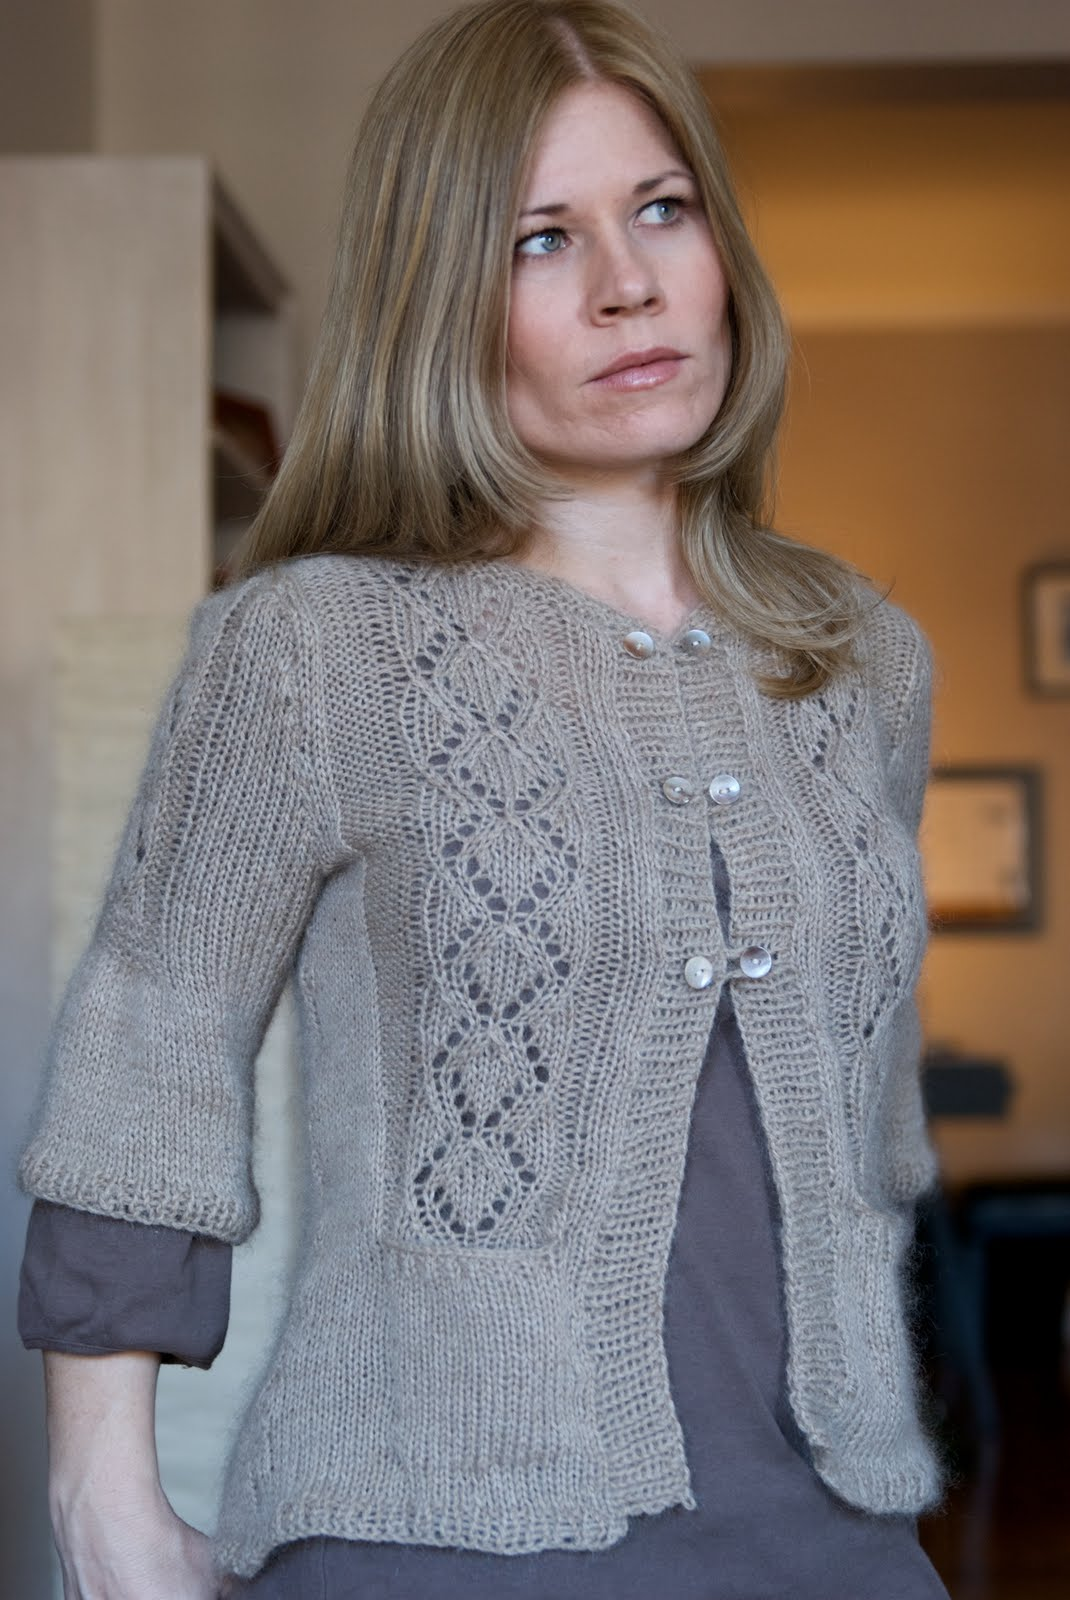 Knitting Patterns Sweater : Sweater patterns knitting gallery